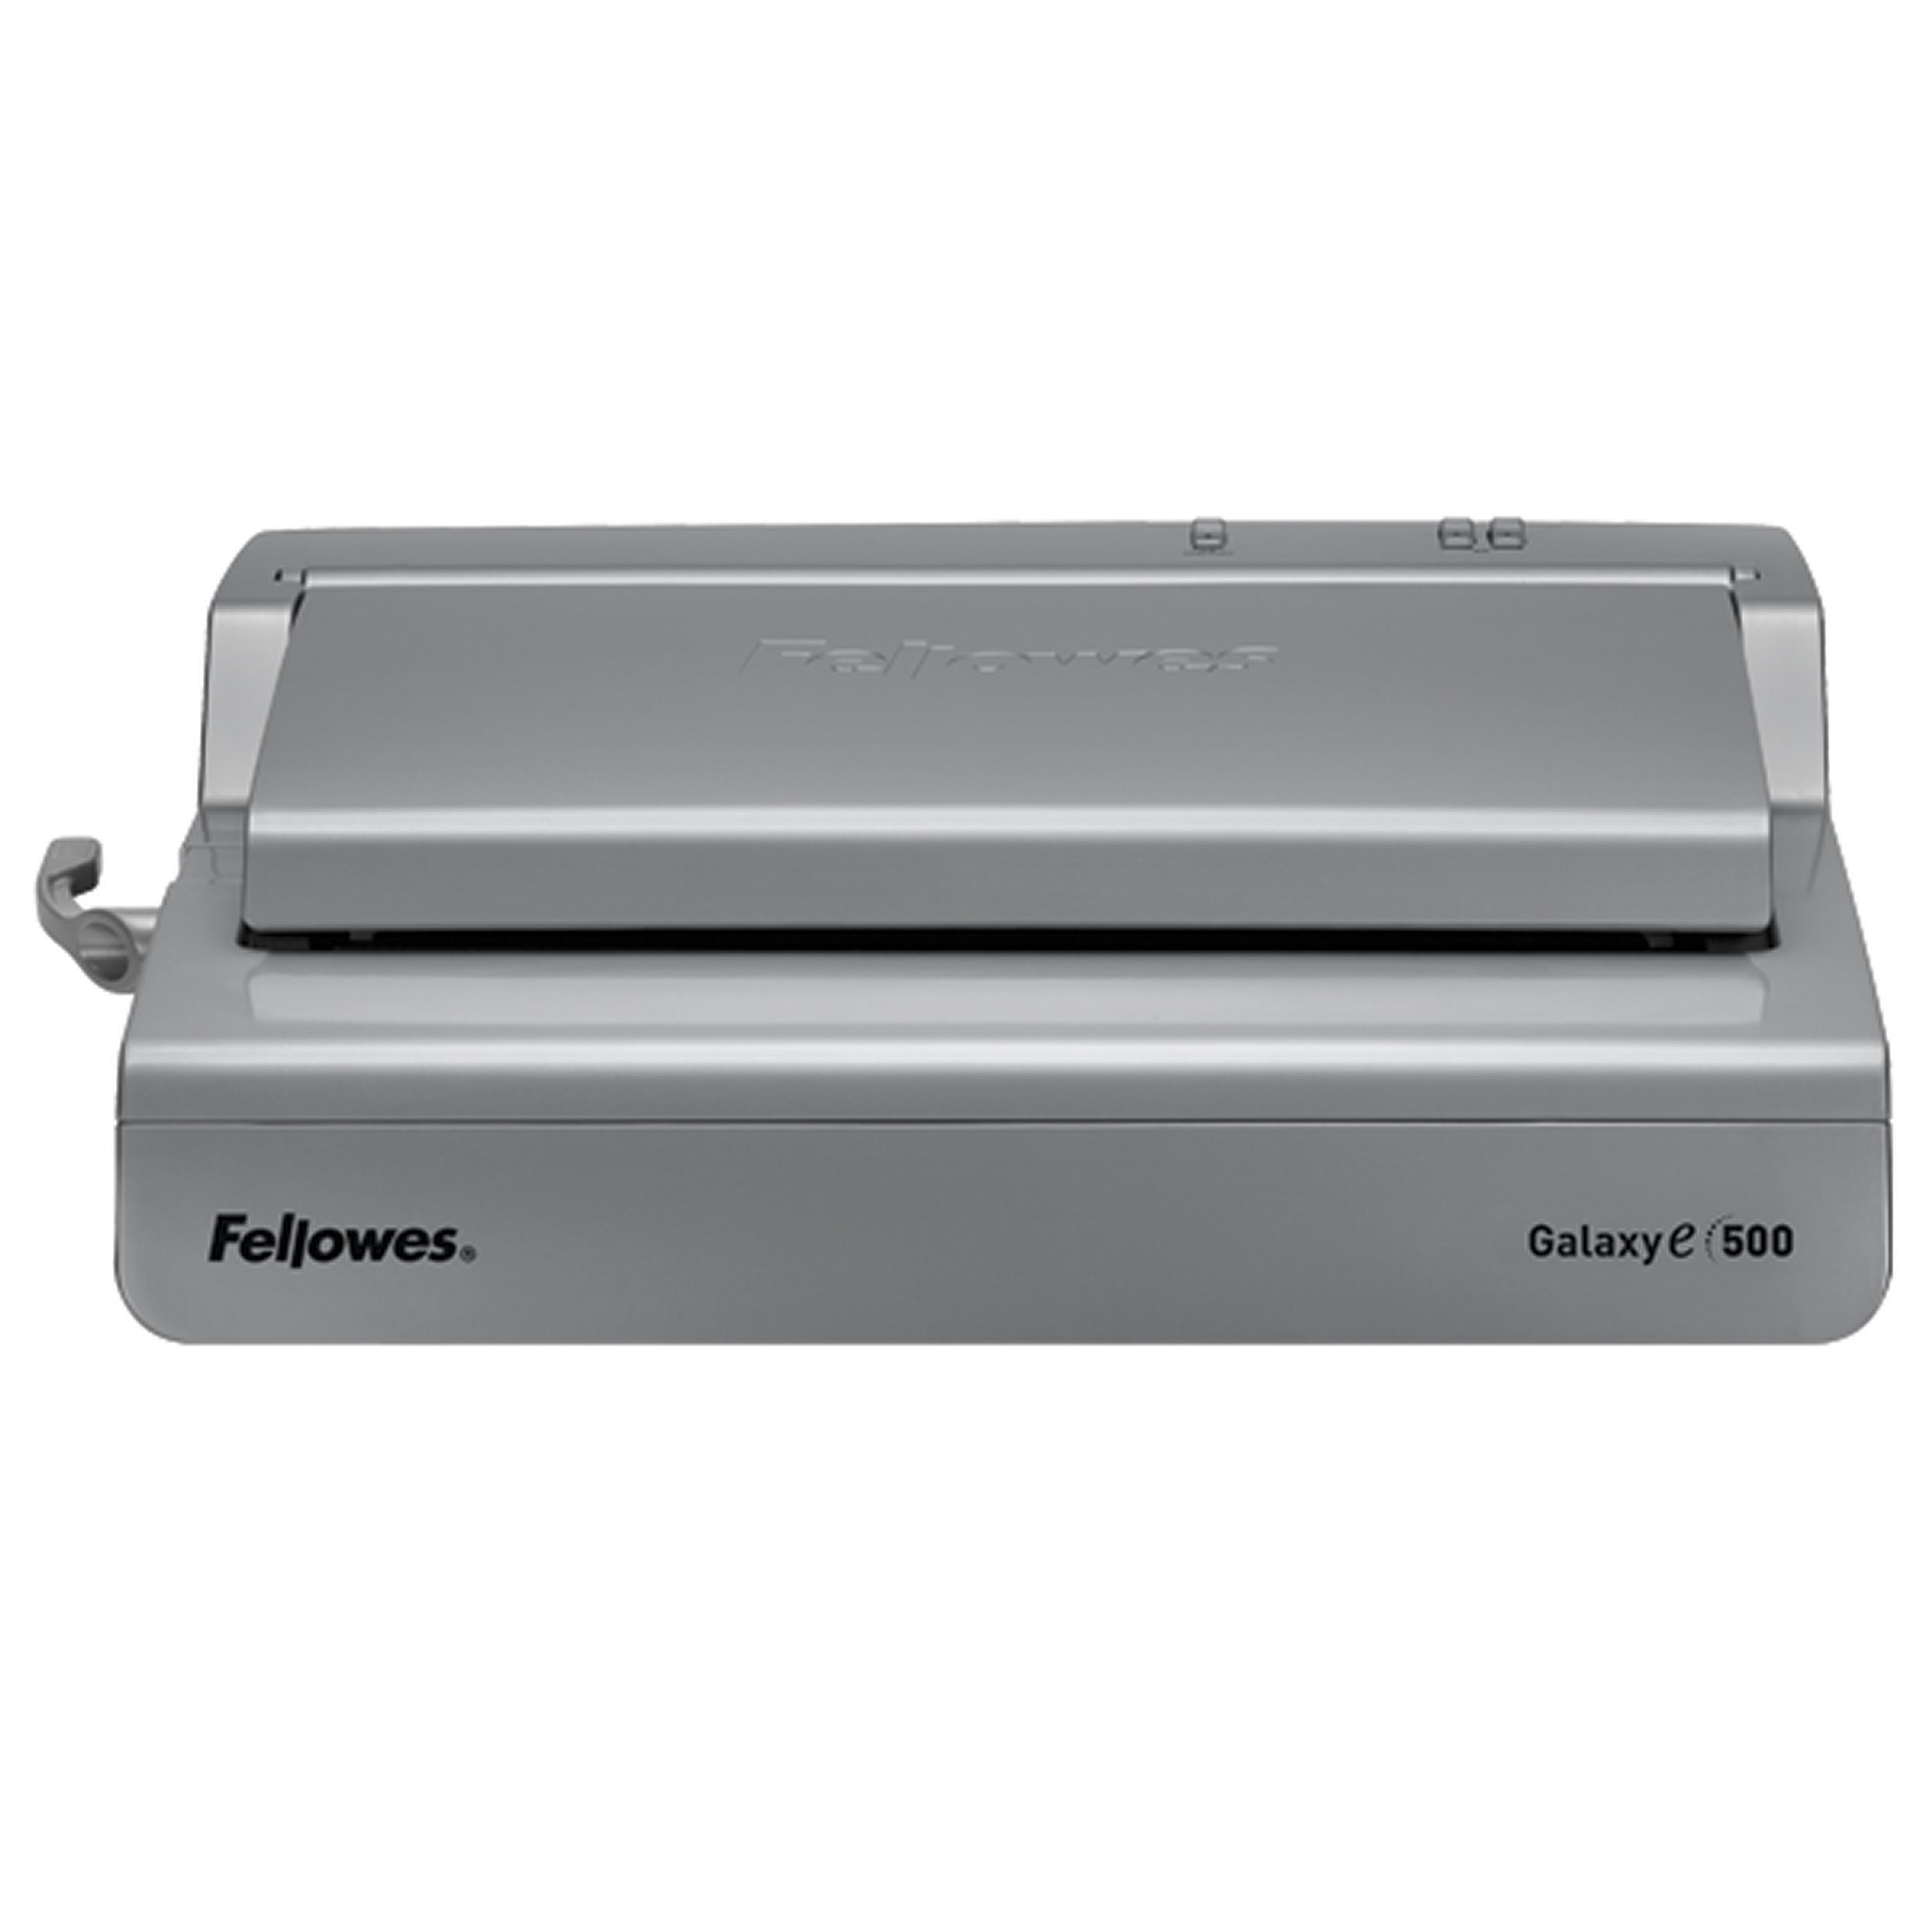 Fellowes 5218301 Galaxy 500 Electric Comb Binding System, 500 Sheets, 19 5/8x17 3/4x6 1/2, Gray by Fellowes (Image #3)